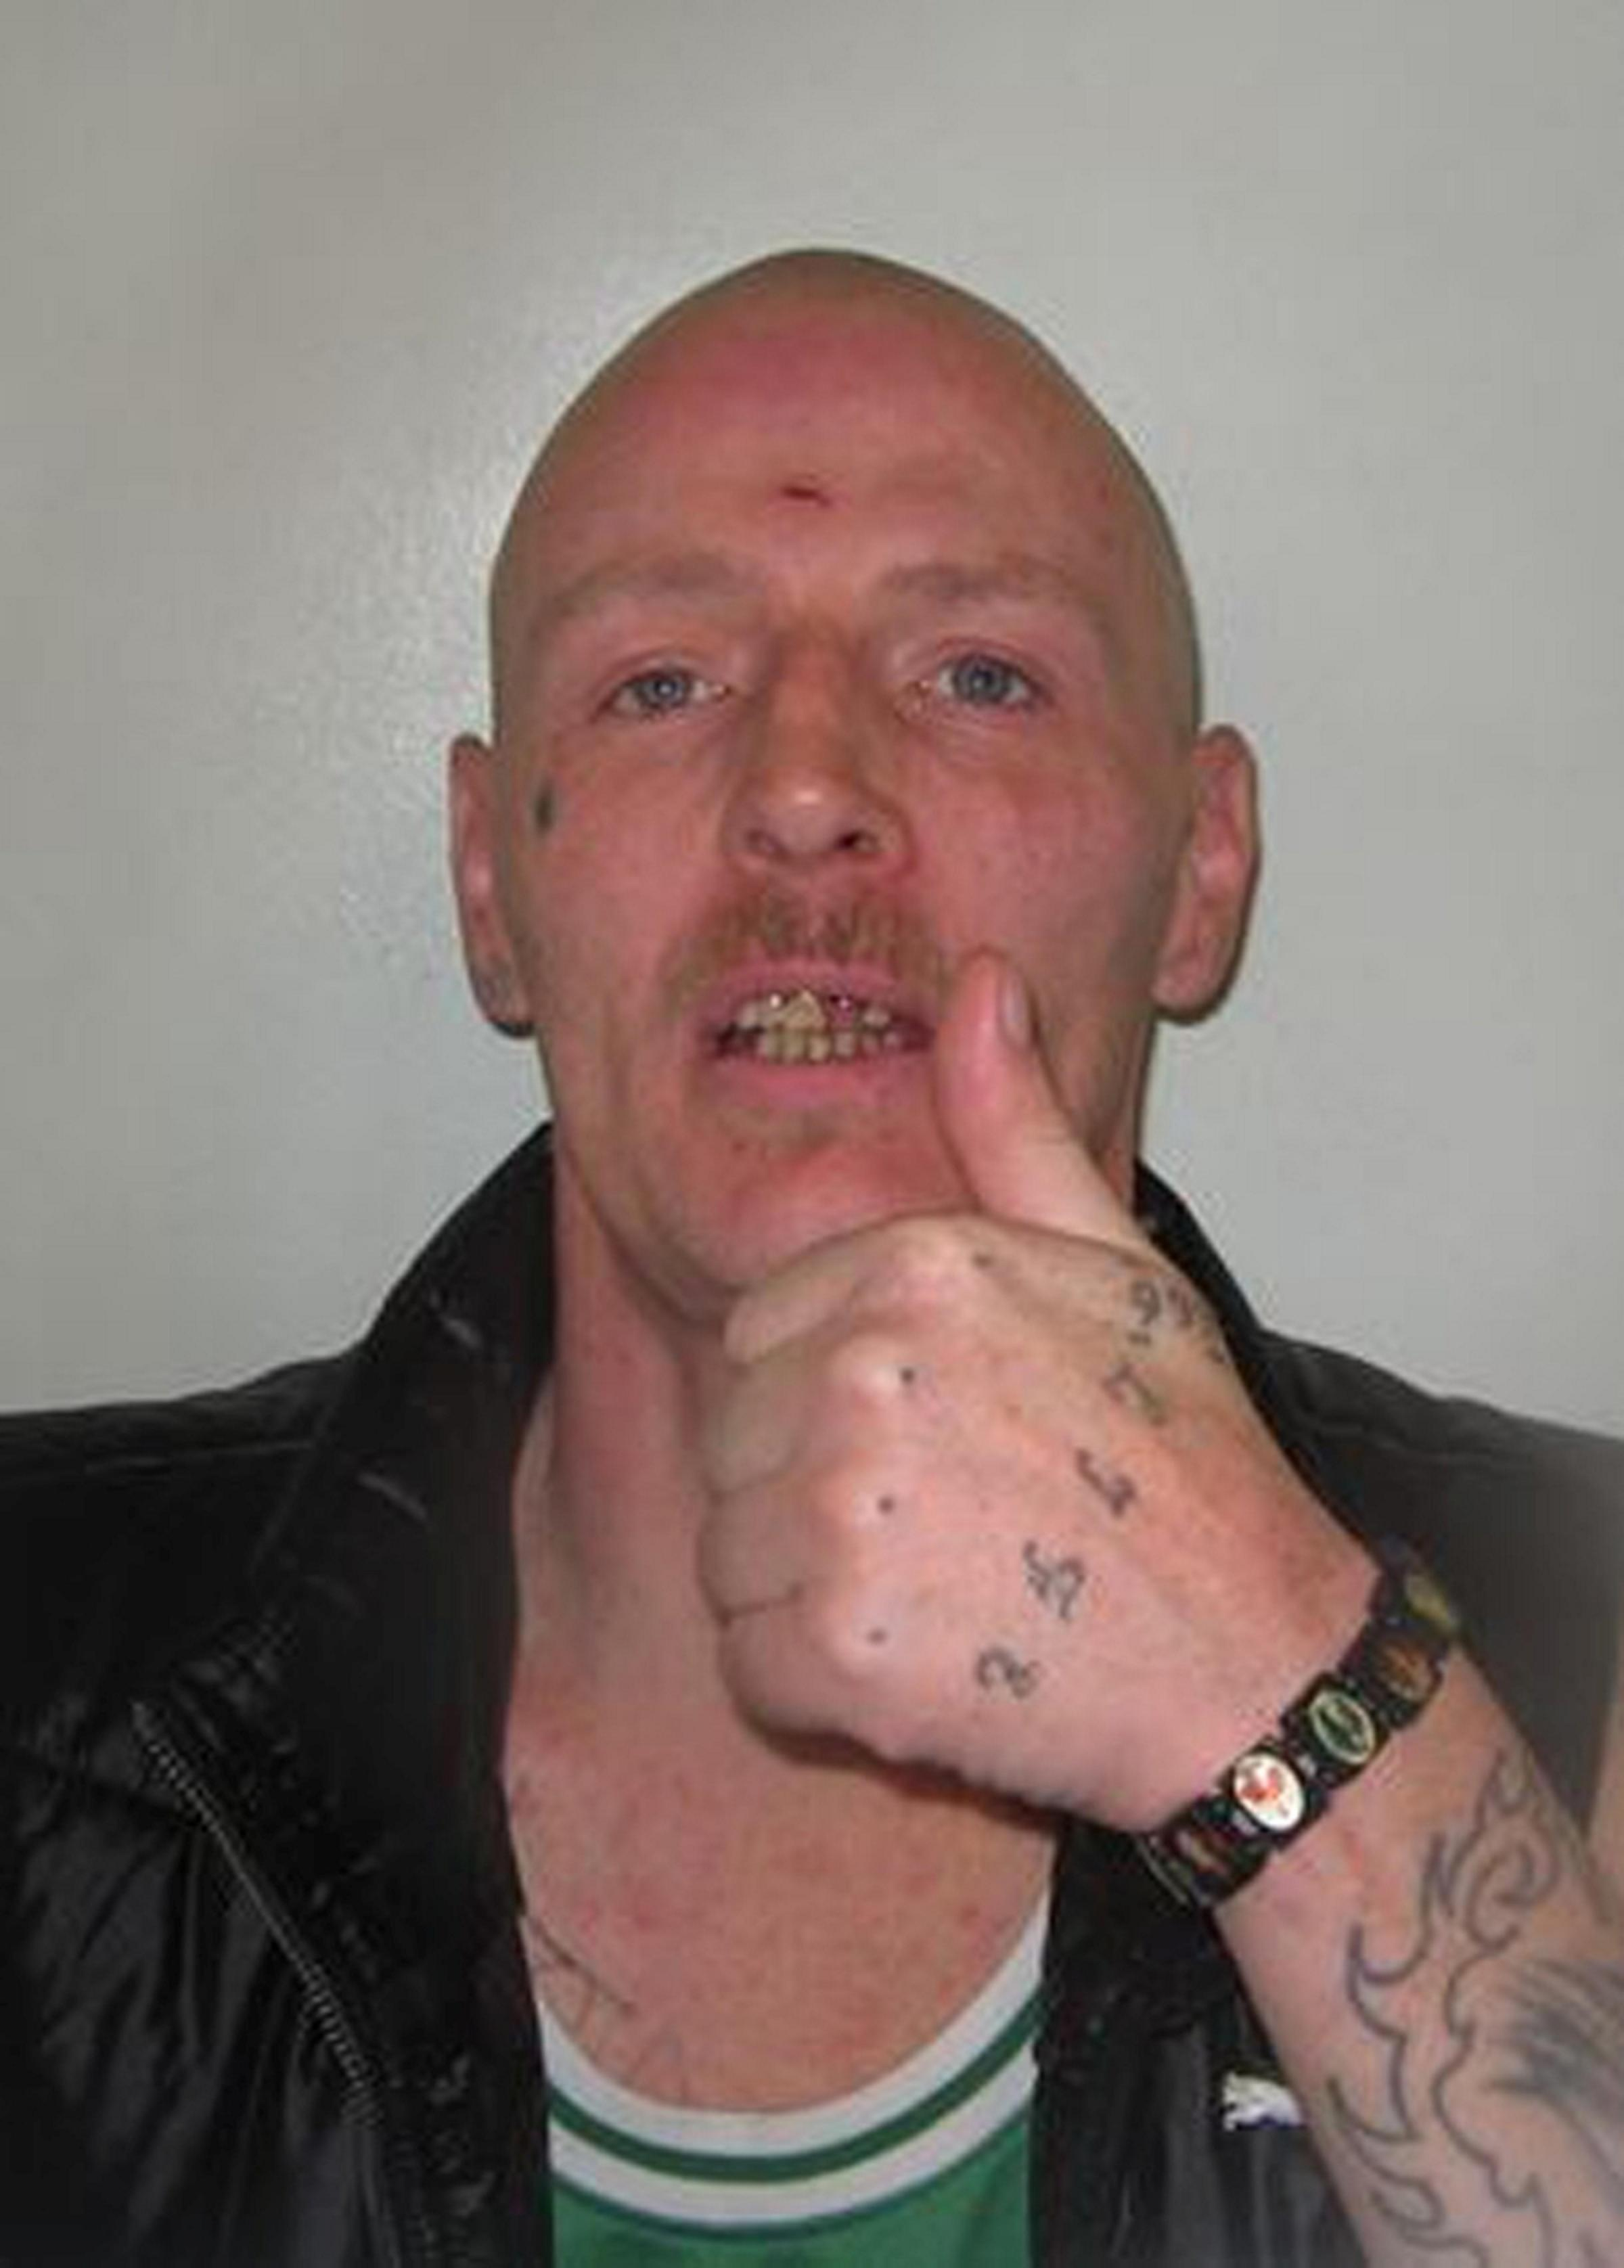 Richard Mulcahy giving thumbs up in a police mugshot. His last